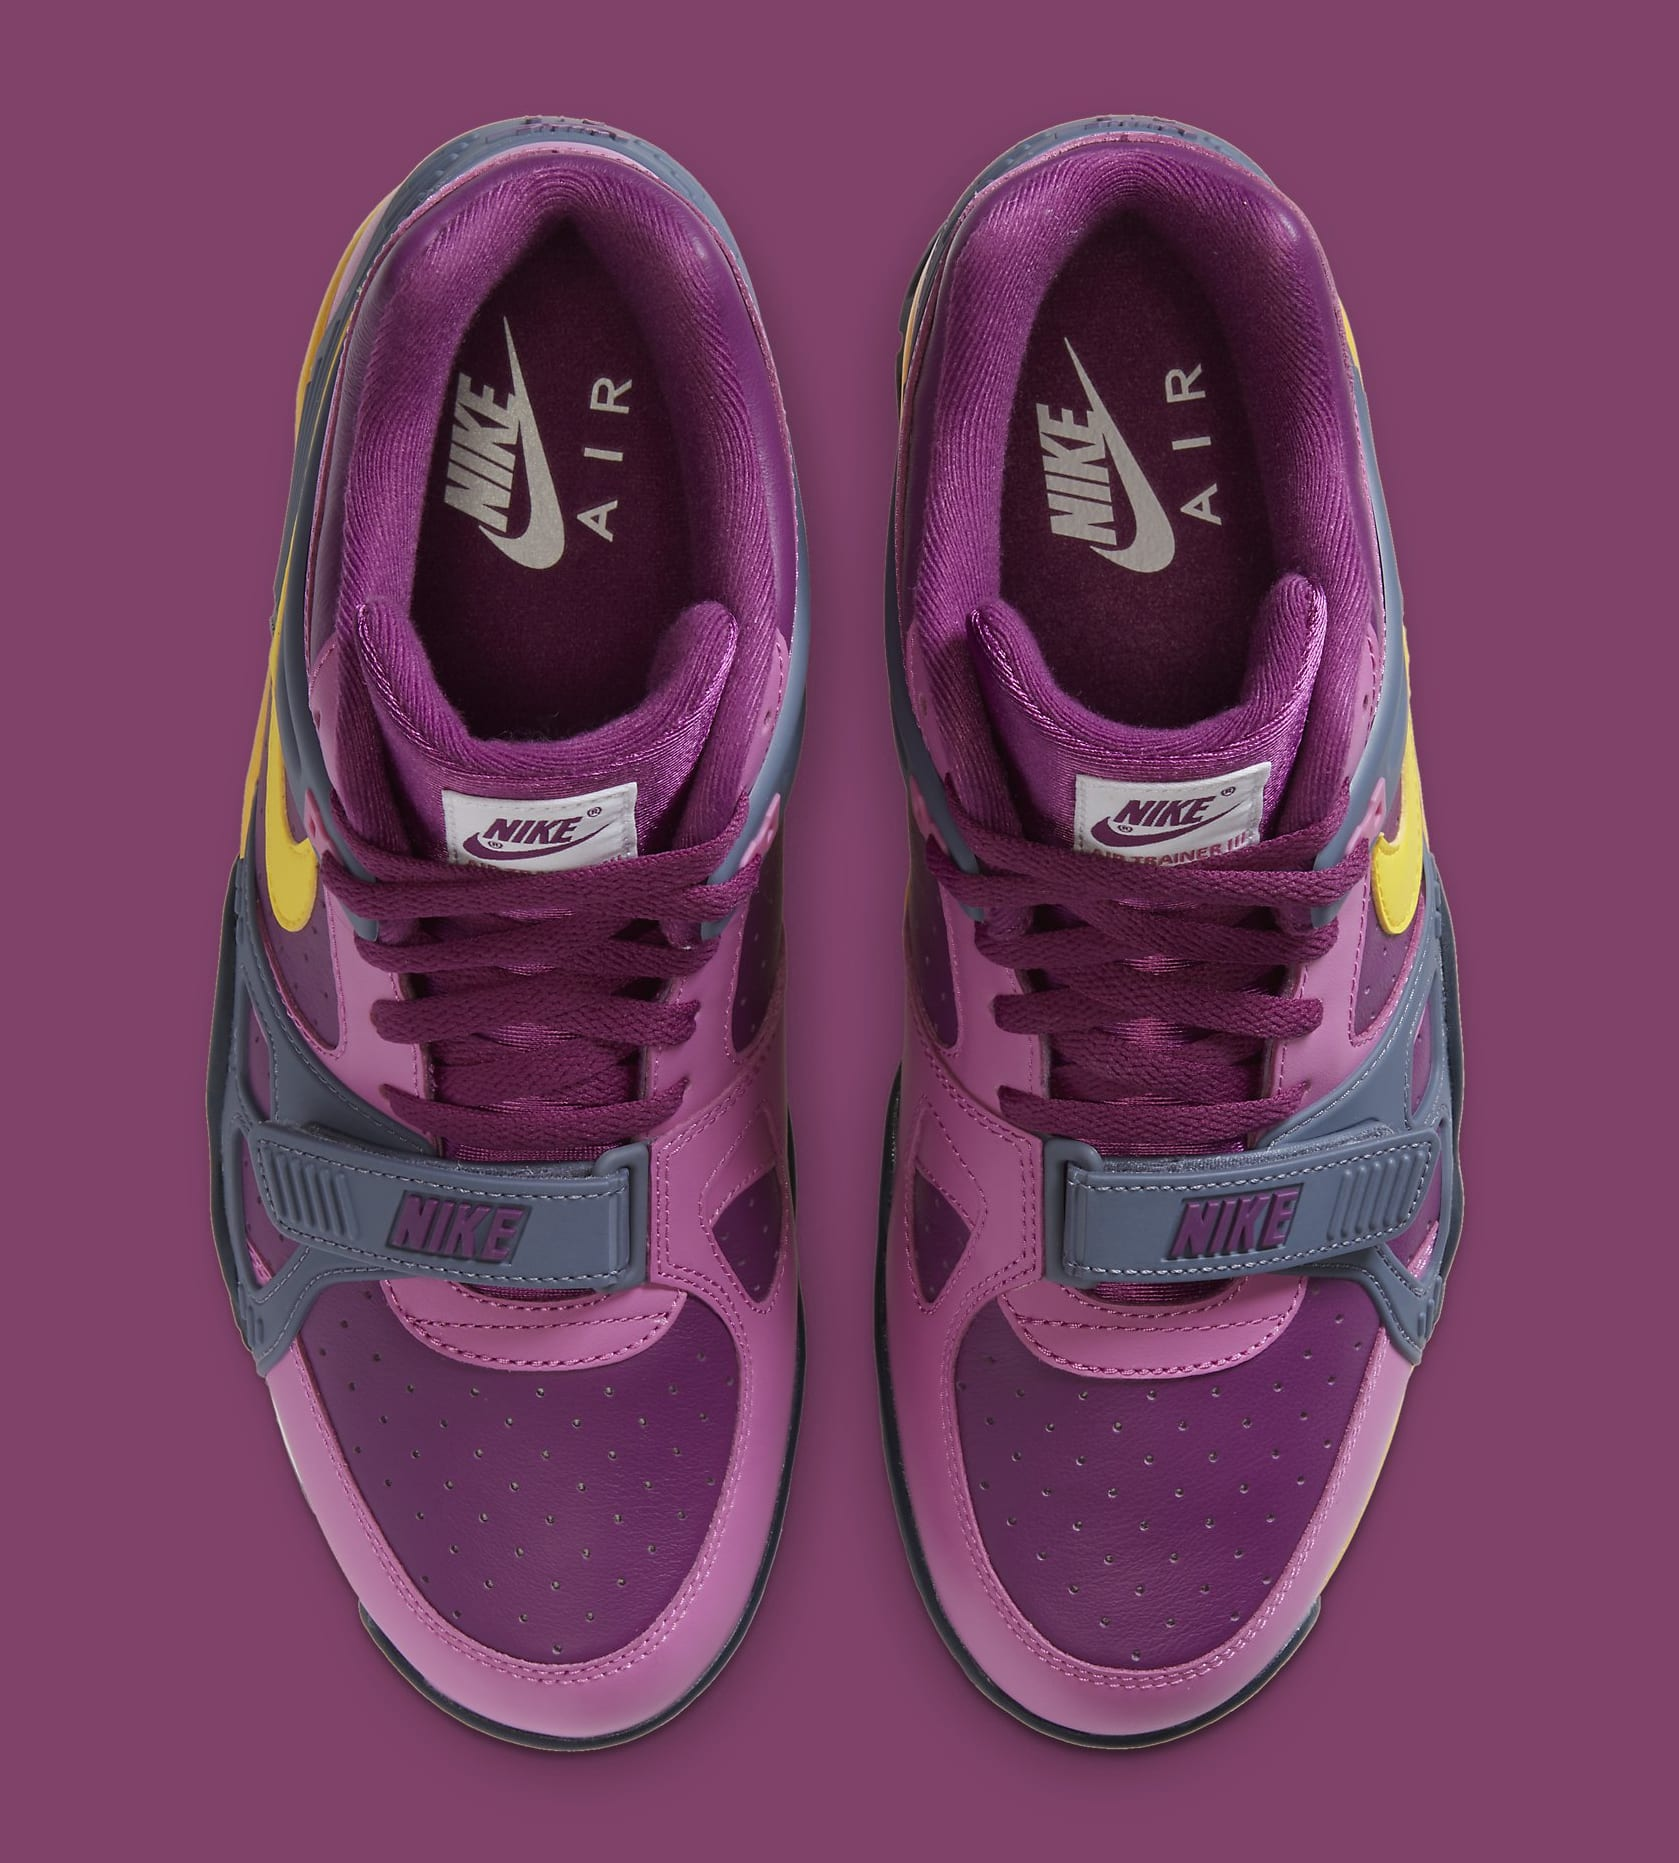 Nike Air Trainer 3 'Viotech' 2020 CZ6393-500 Top